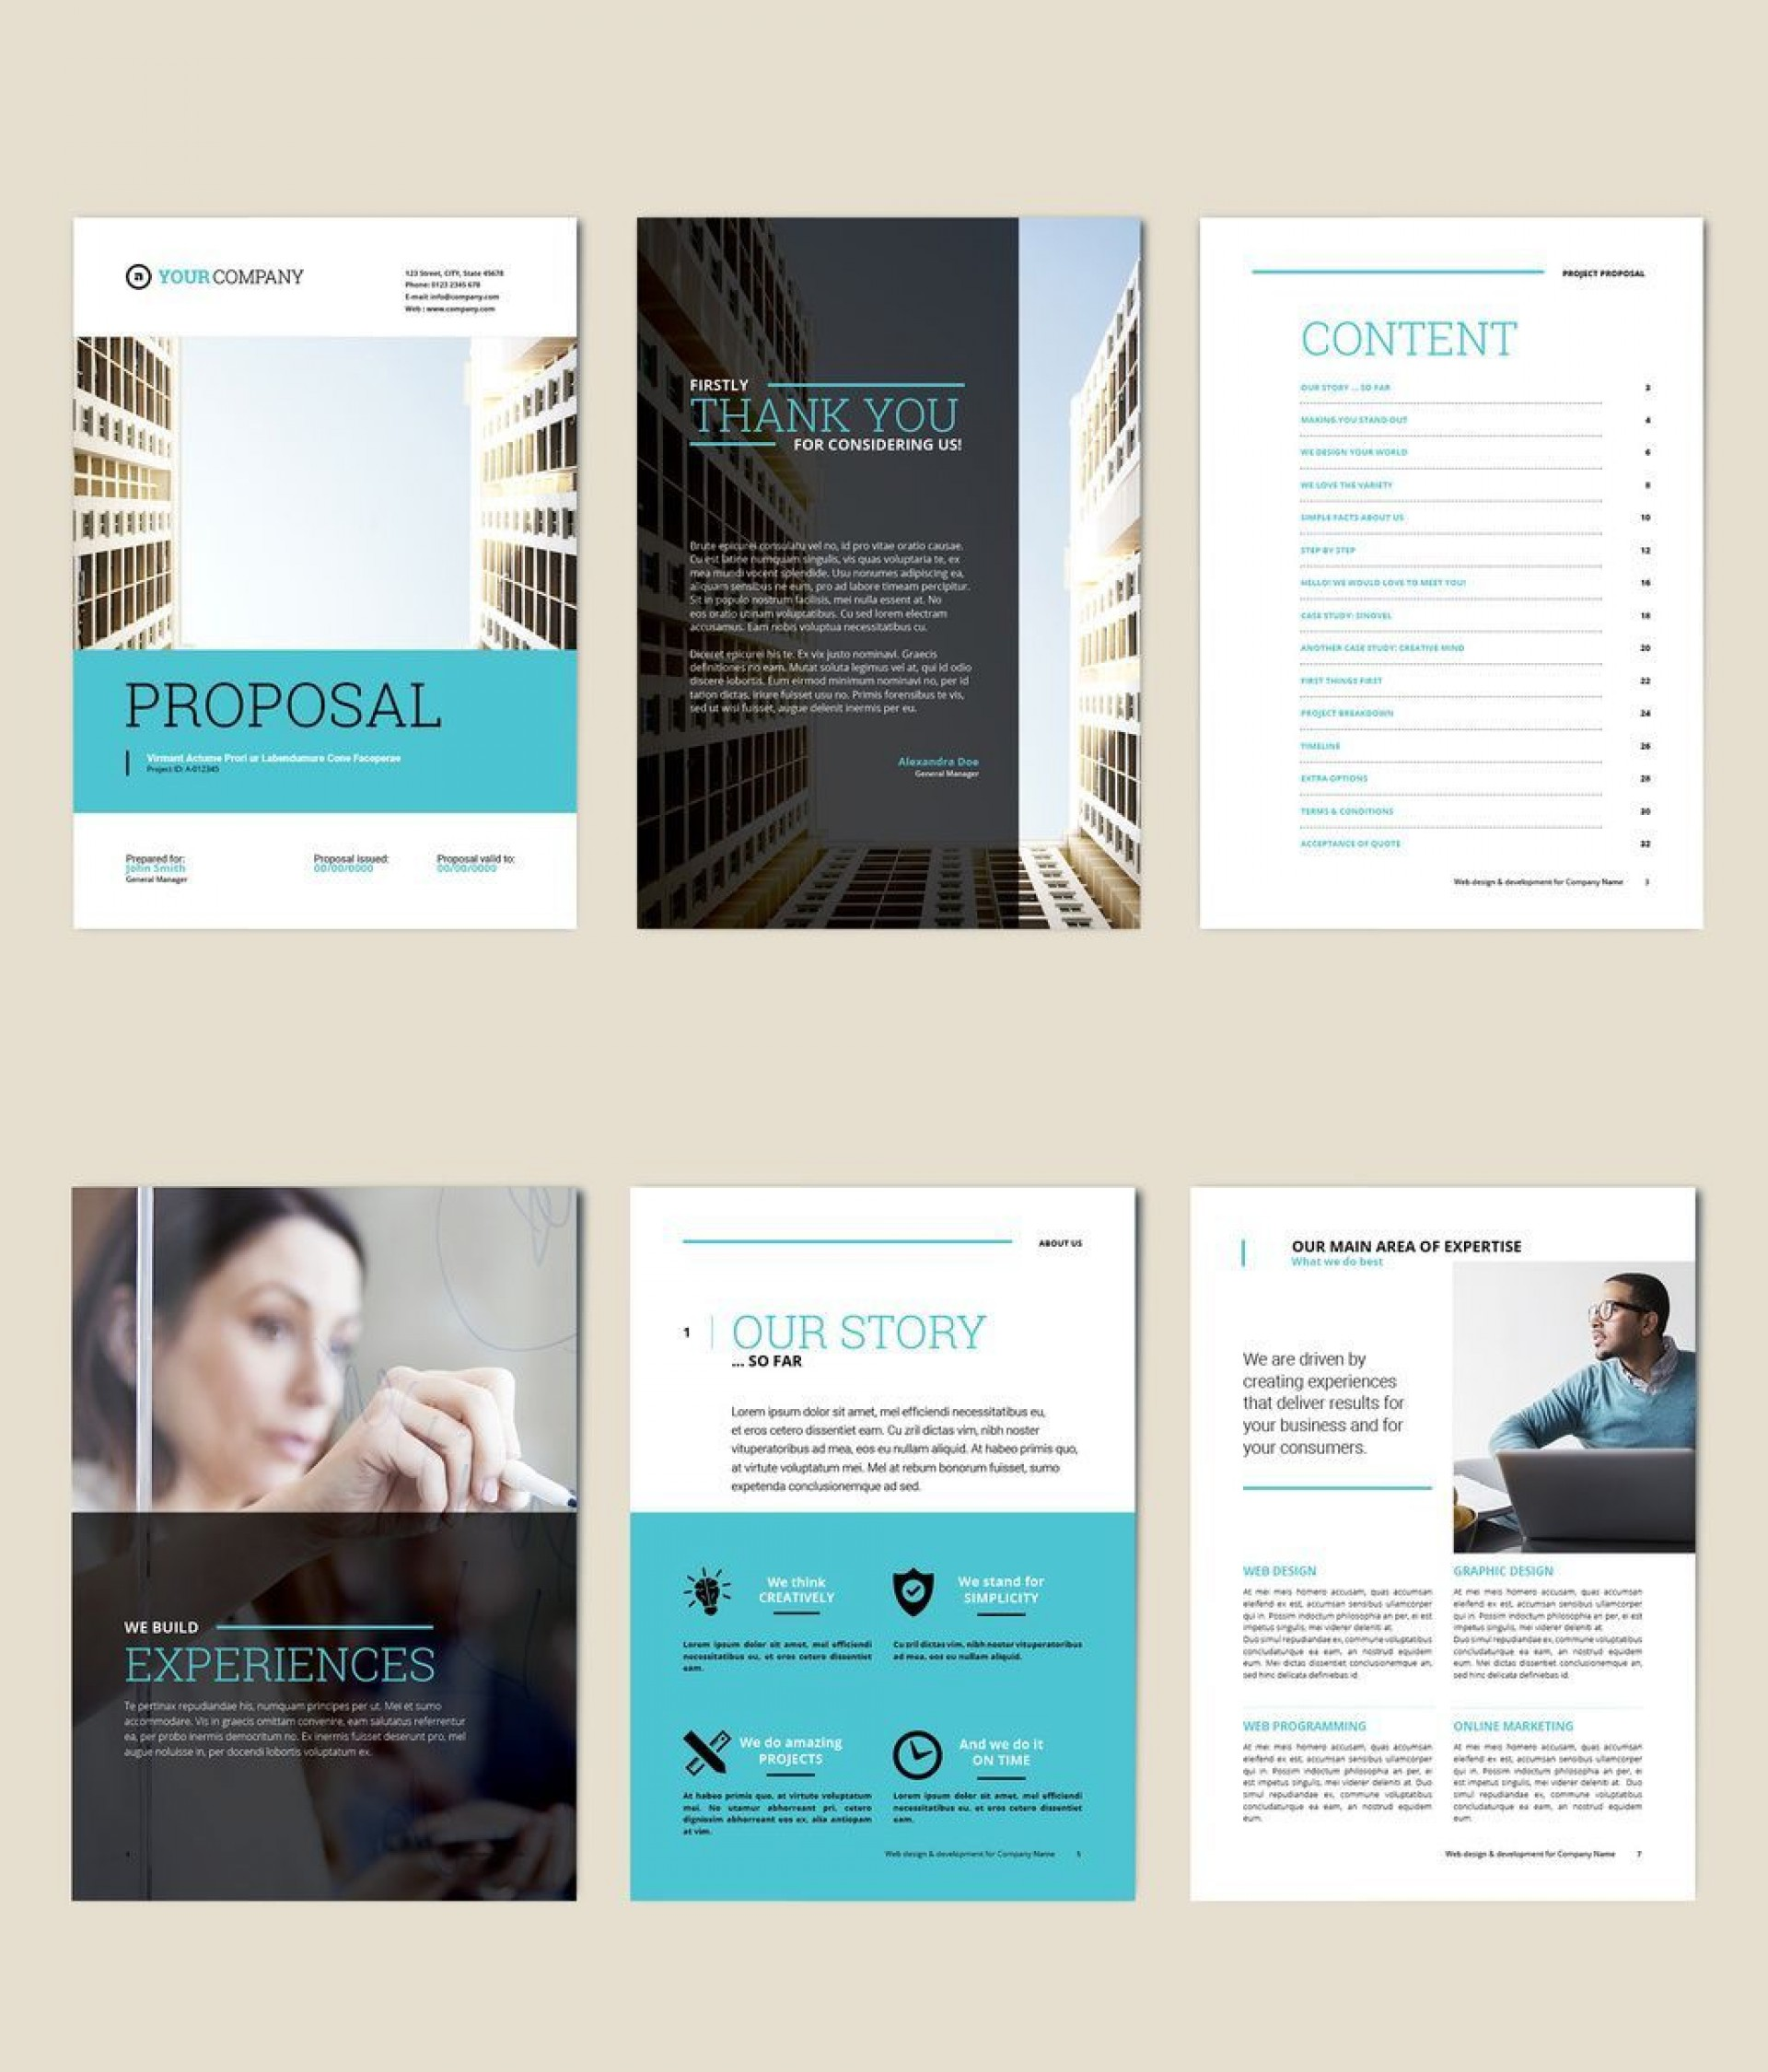 001 Staggering Free Adobe Indesign Annual Report Template Highest Quality 1920